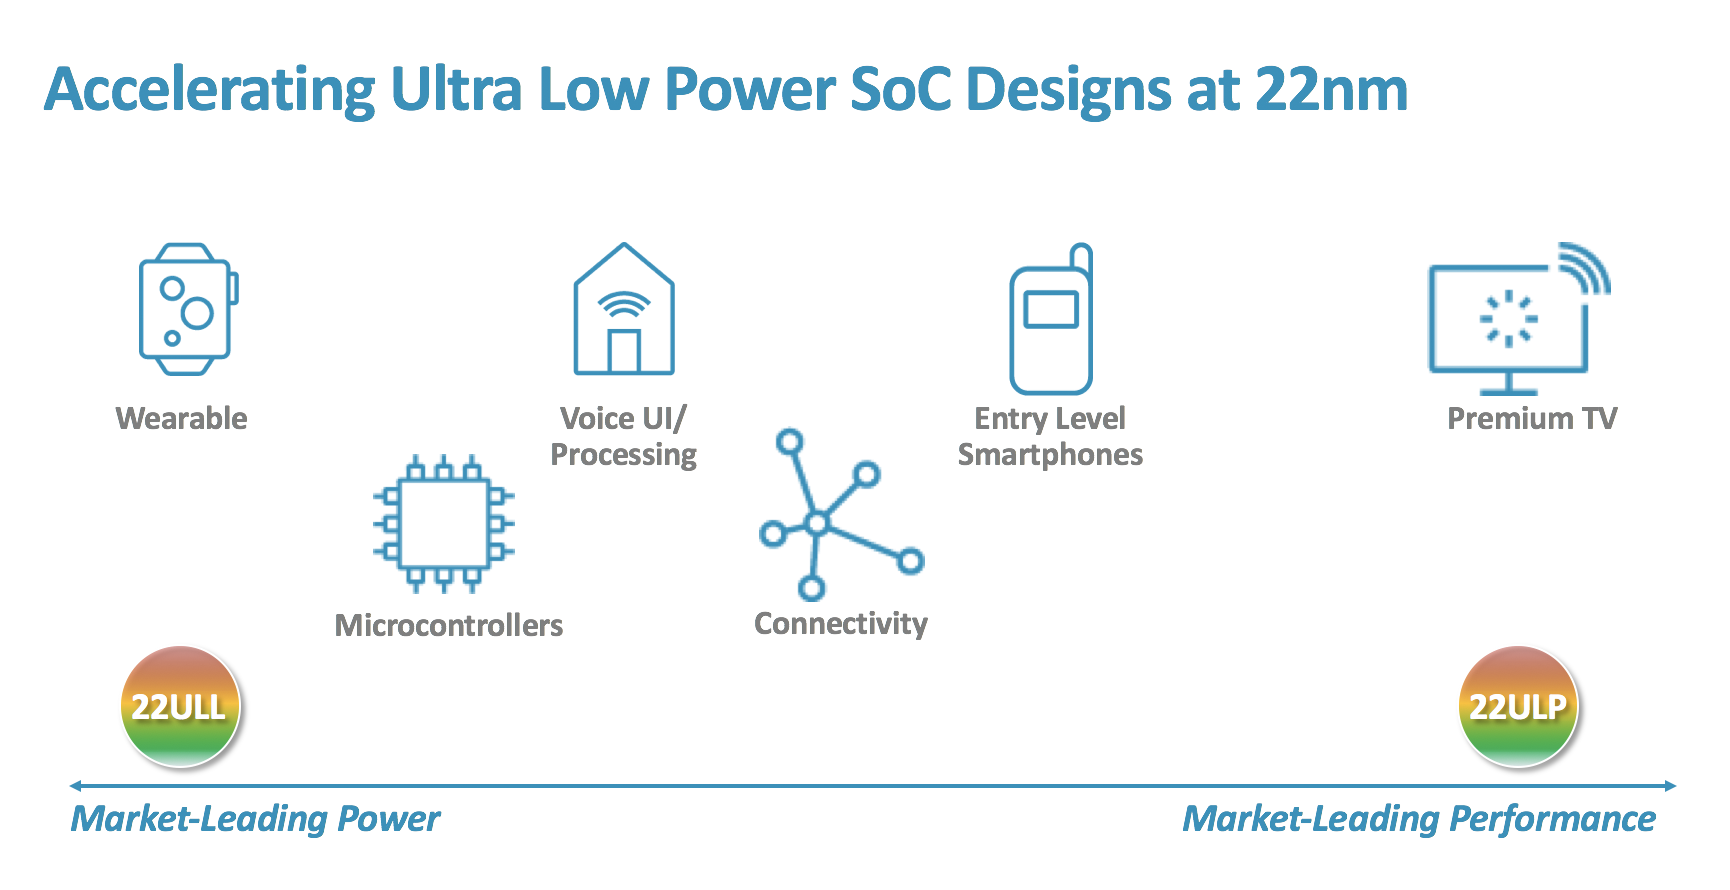 Accelerating ultra low power SoC Designs